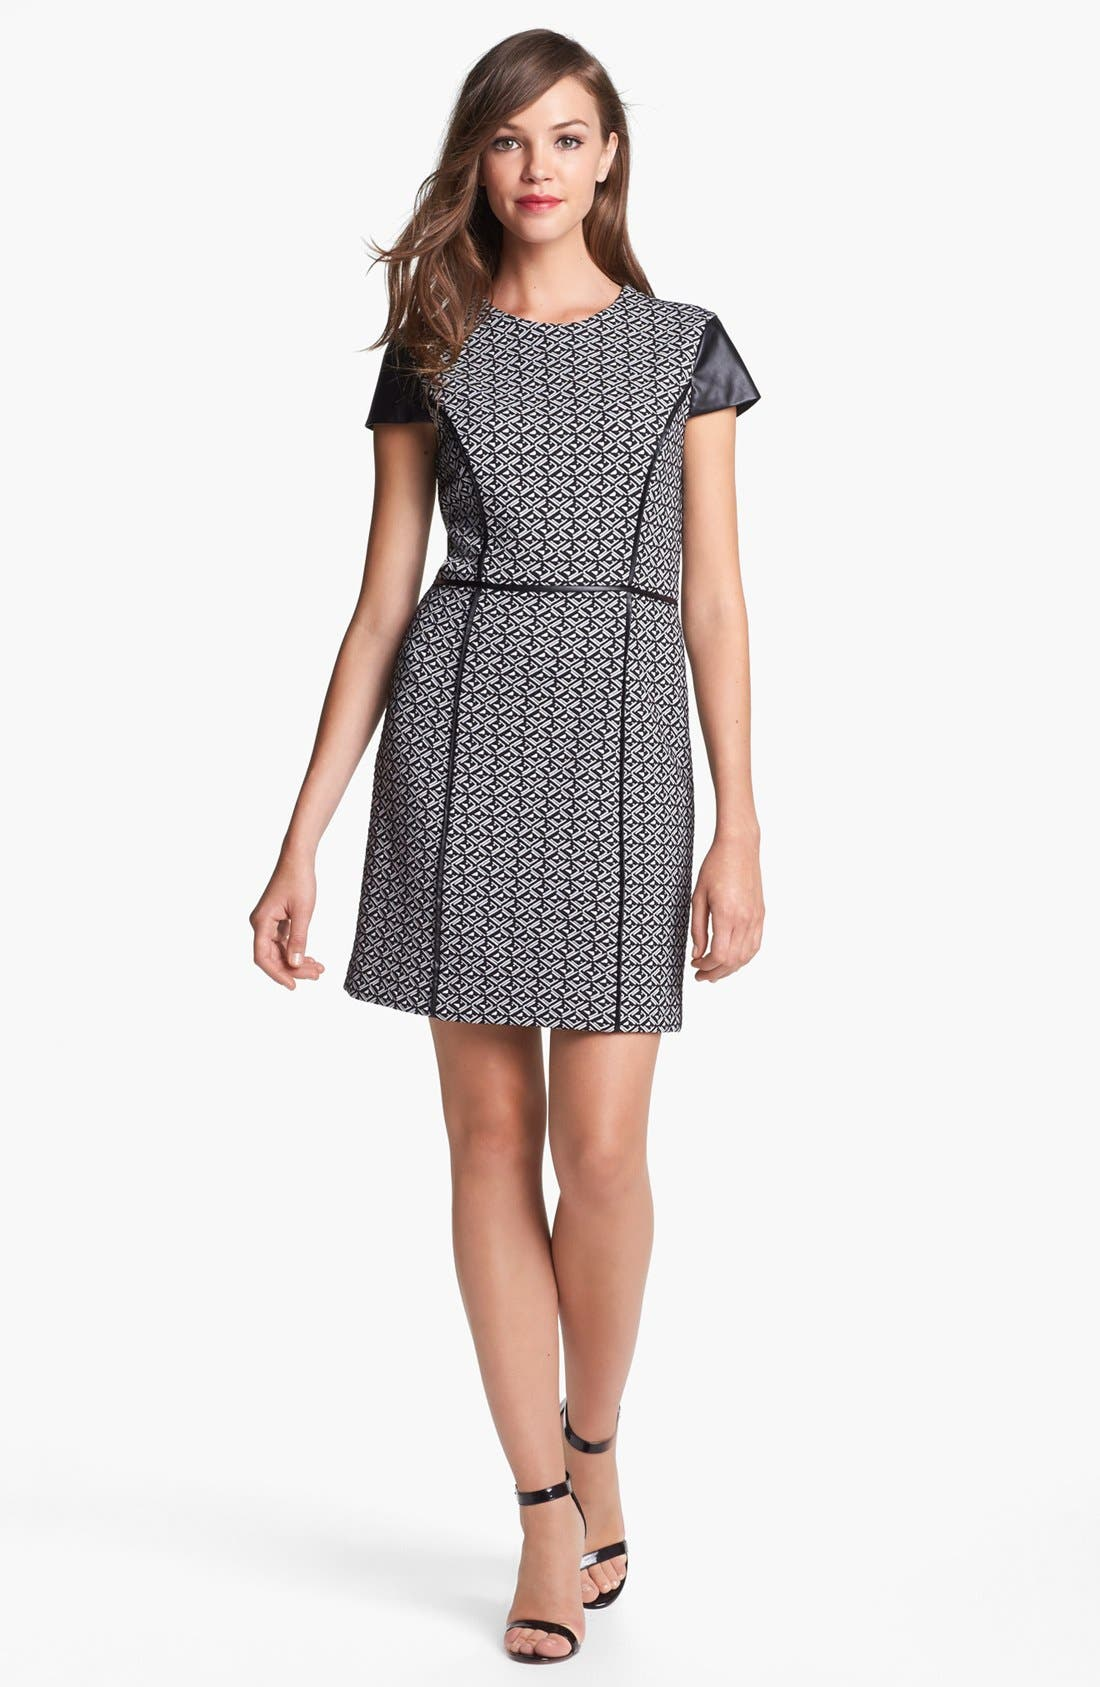 Alternate Image 1 Selected - Cynthia Steffe Faux Leather Trim Jacquard Sheath Dress (Online Only)